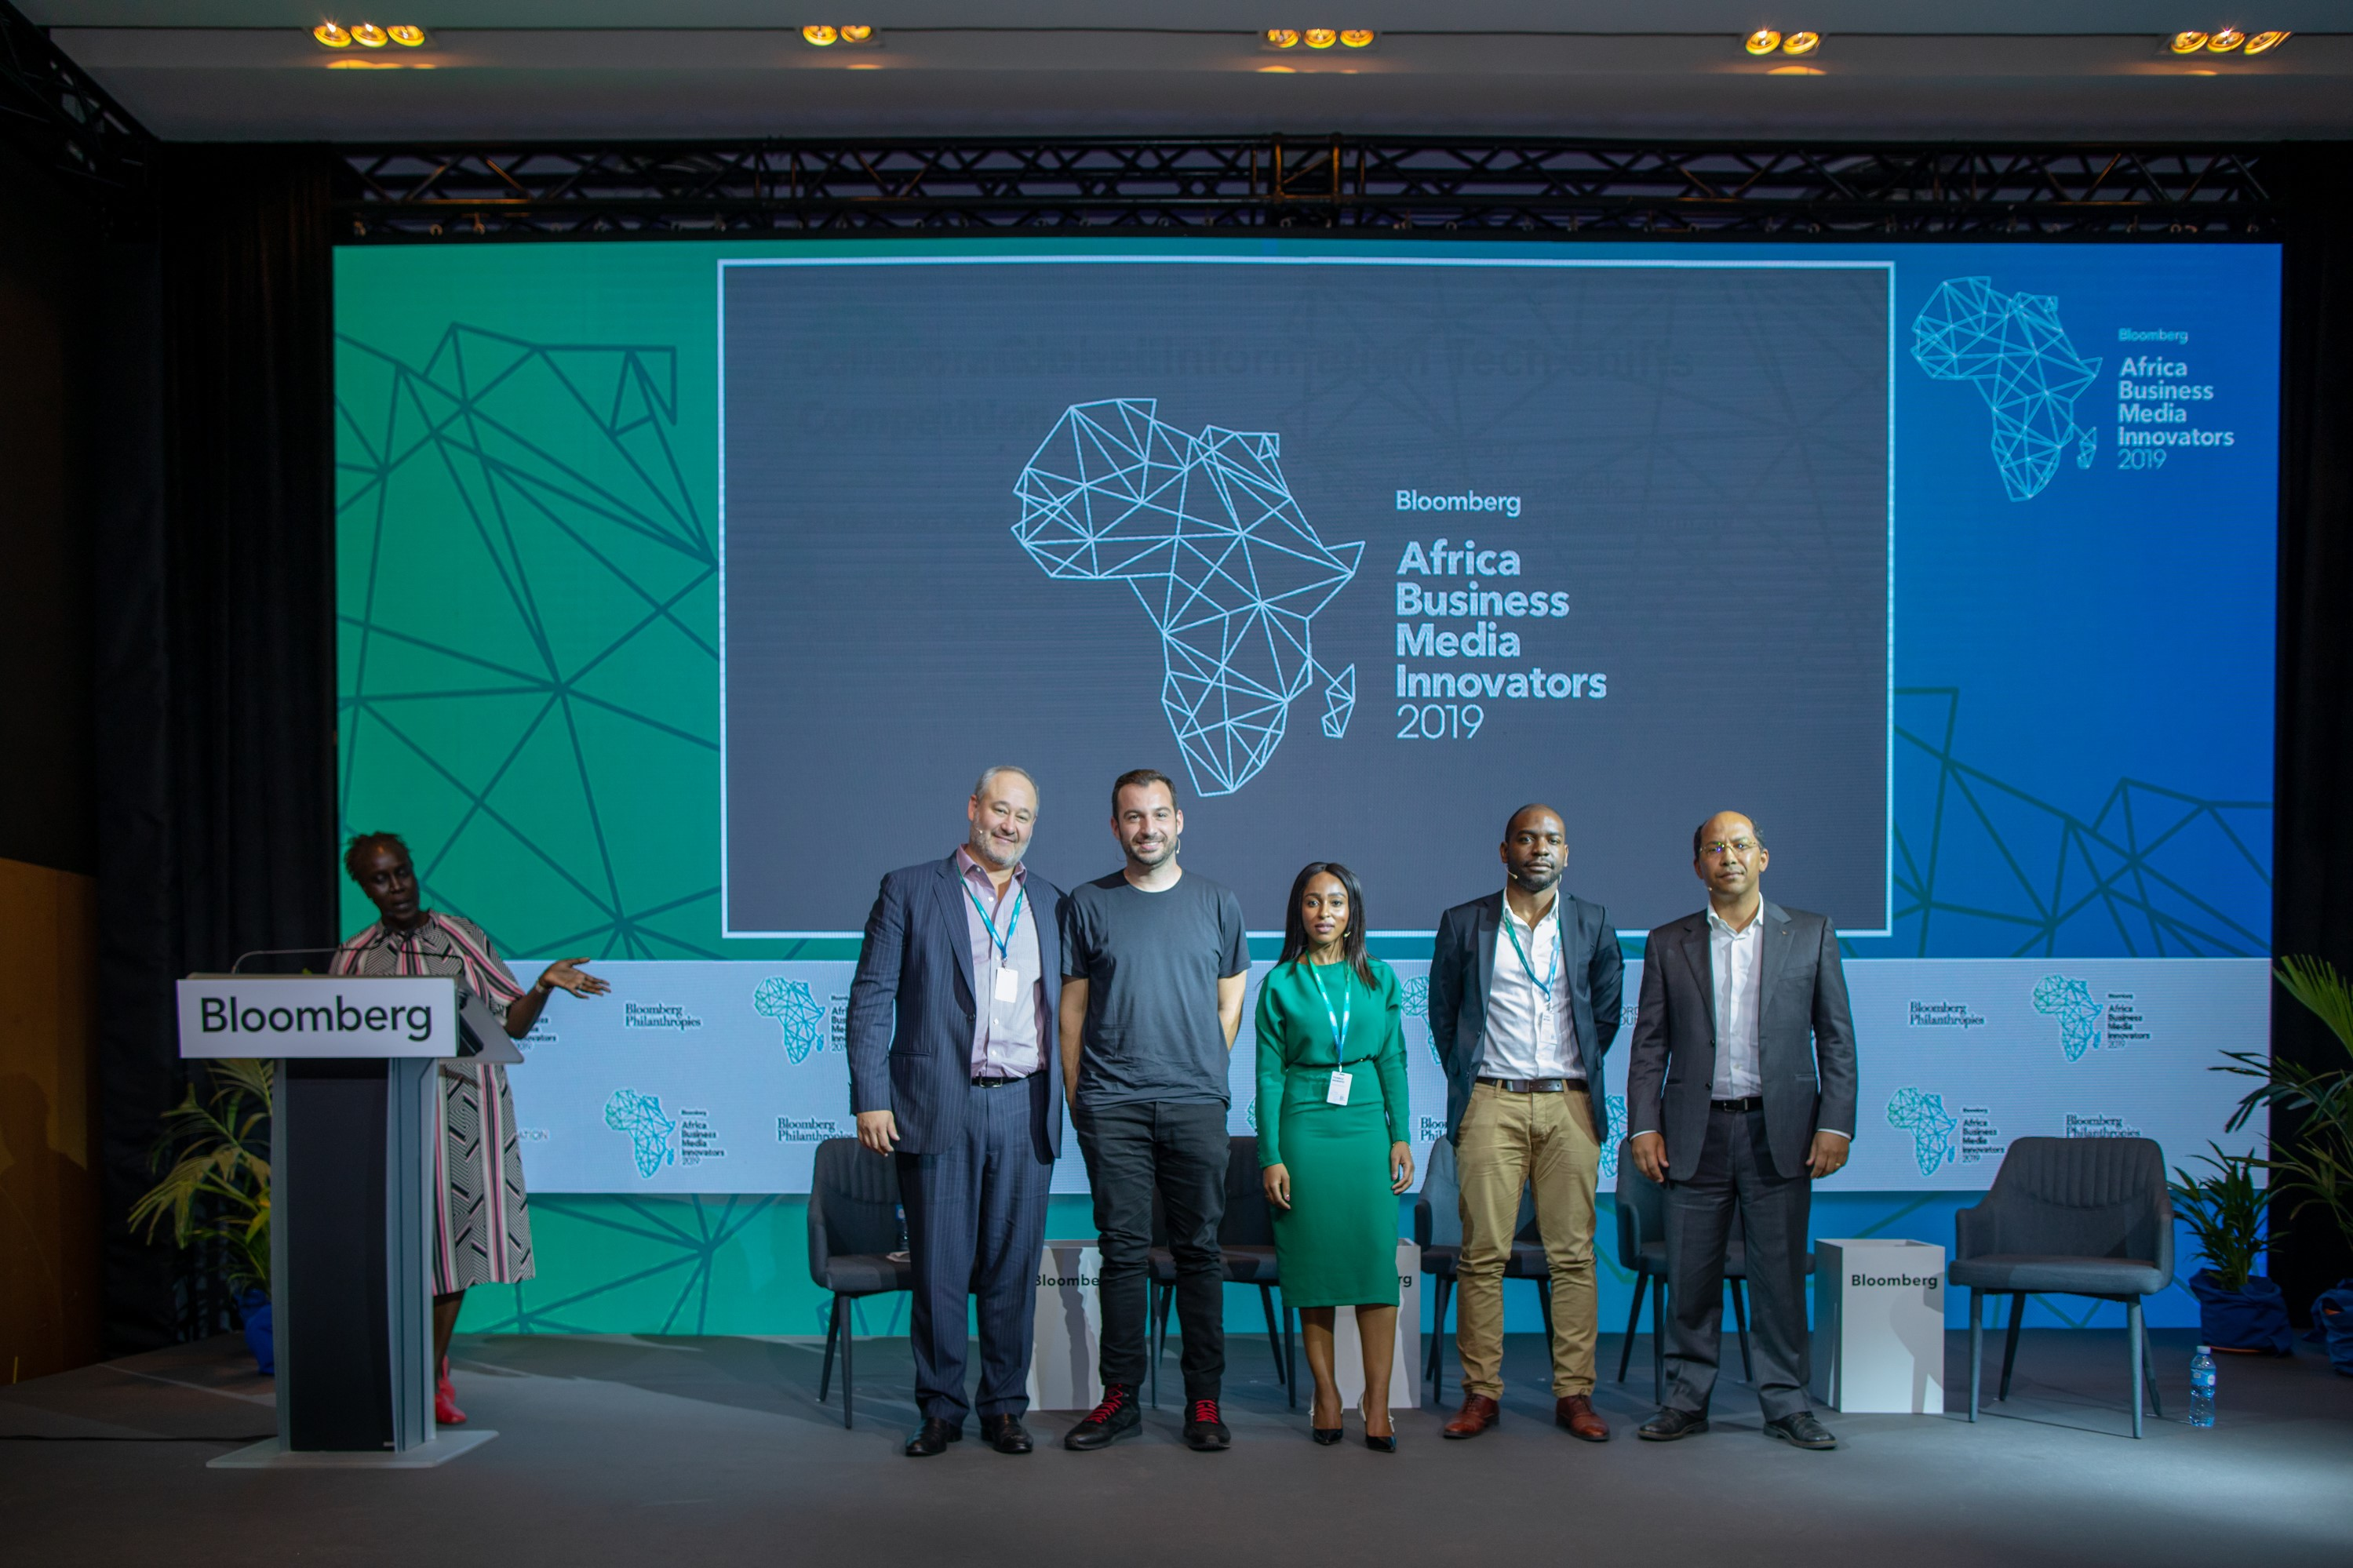 Scott Havens, Head of Digital, Bloomberg Media; Jarrod Dicker, Vice President, Commercial, The Washington Post; Thabile Ngwato,CEO, Newzroom Afrika; Yves Biyah, Deputy CEO, Jeune Afrique; and Nicholas Pompigne-Mognard